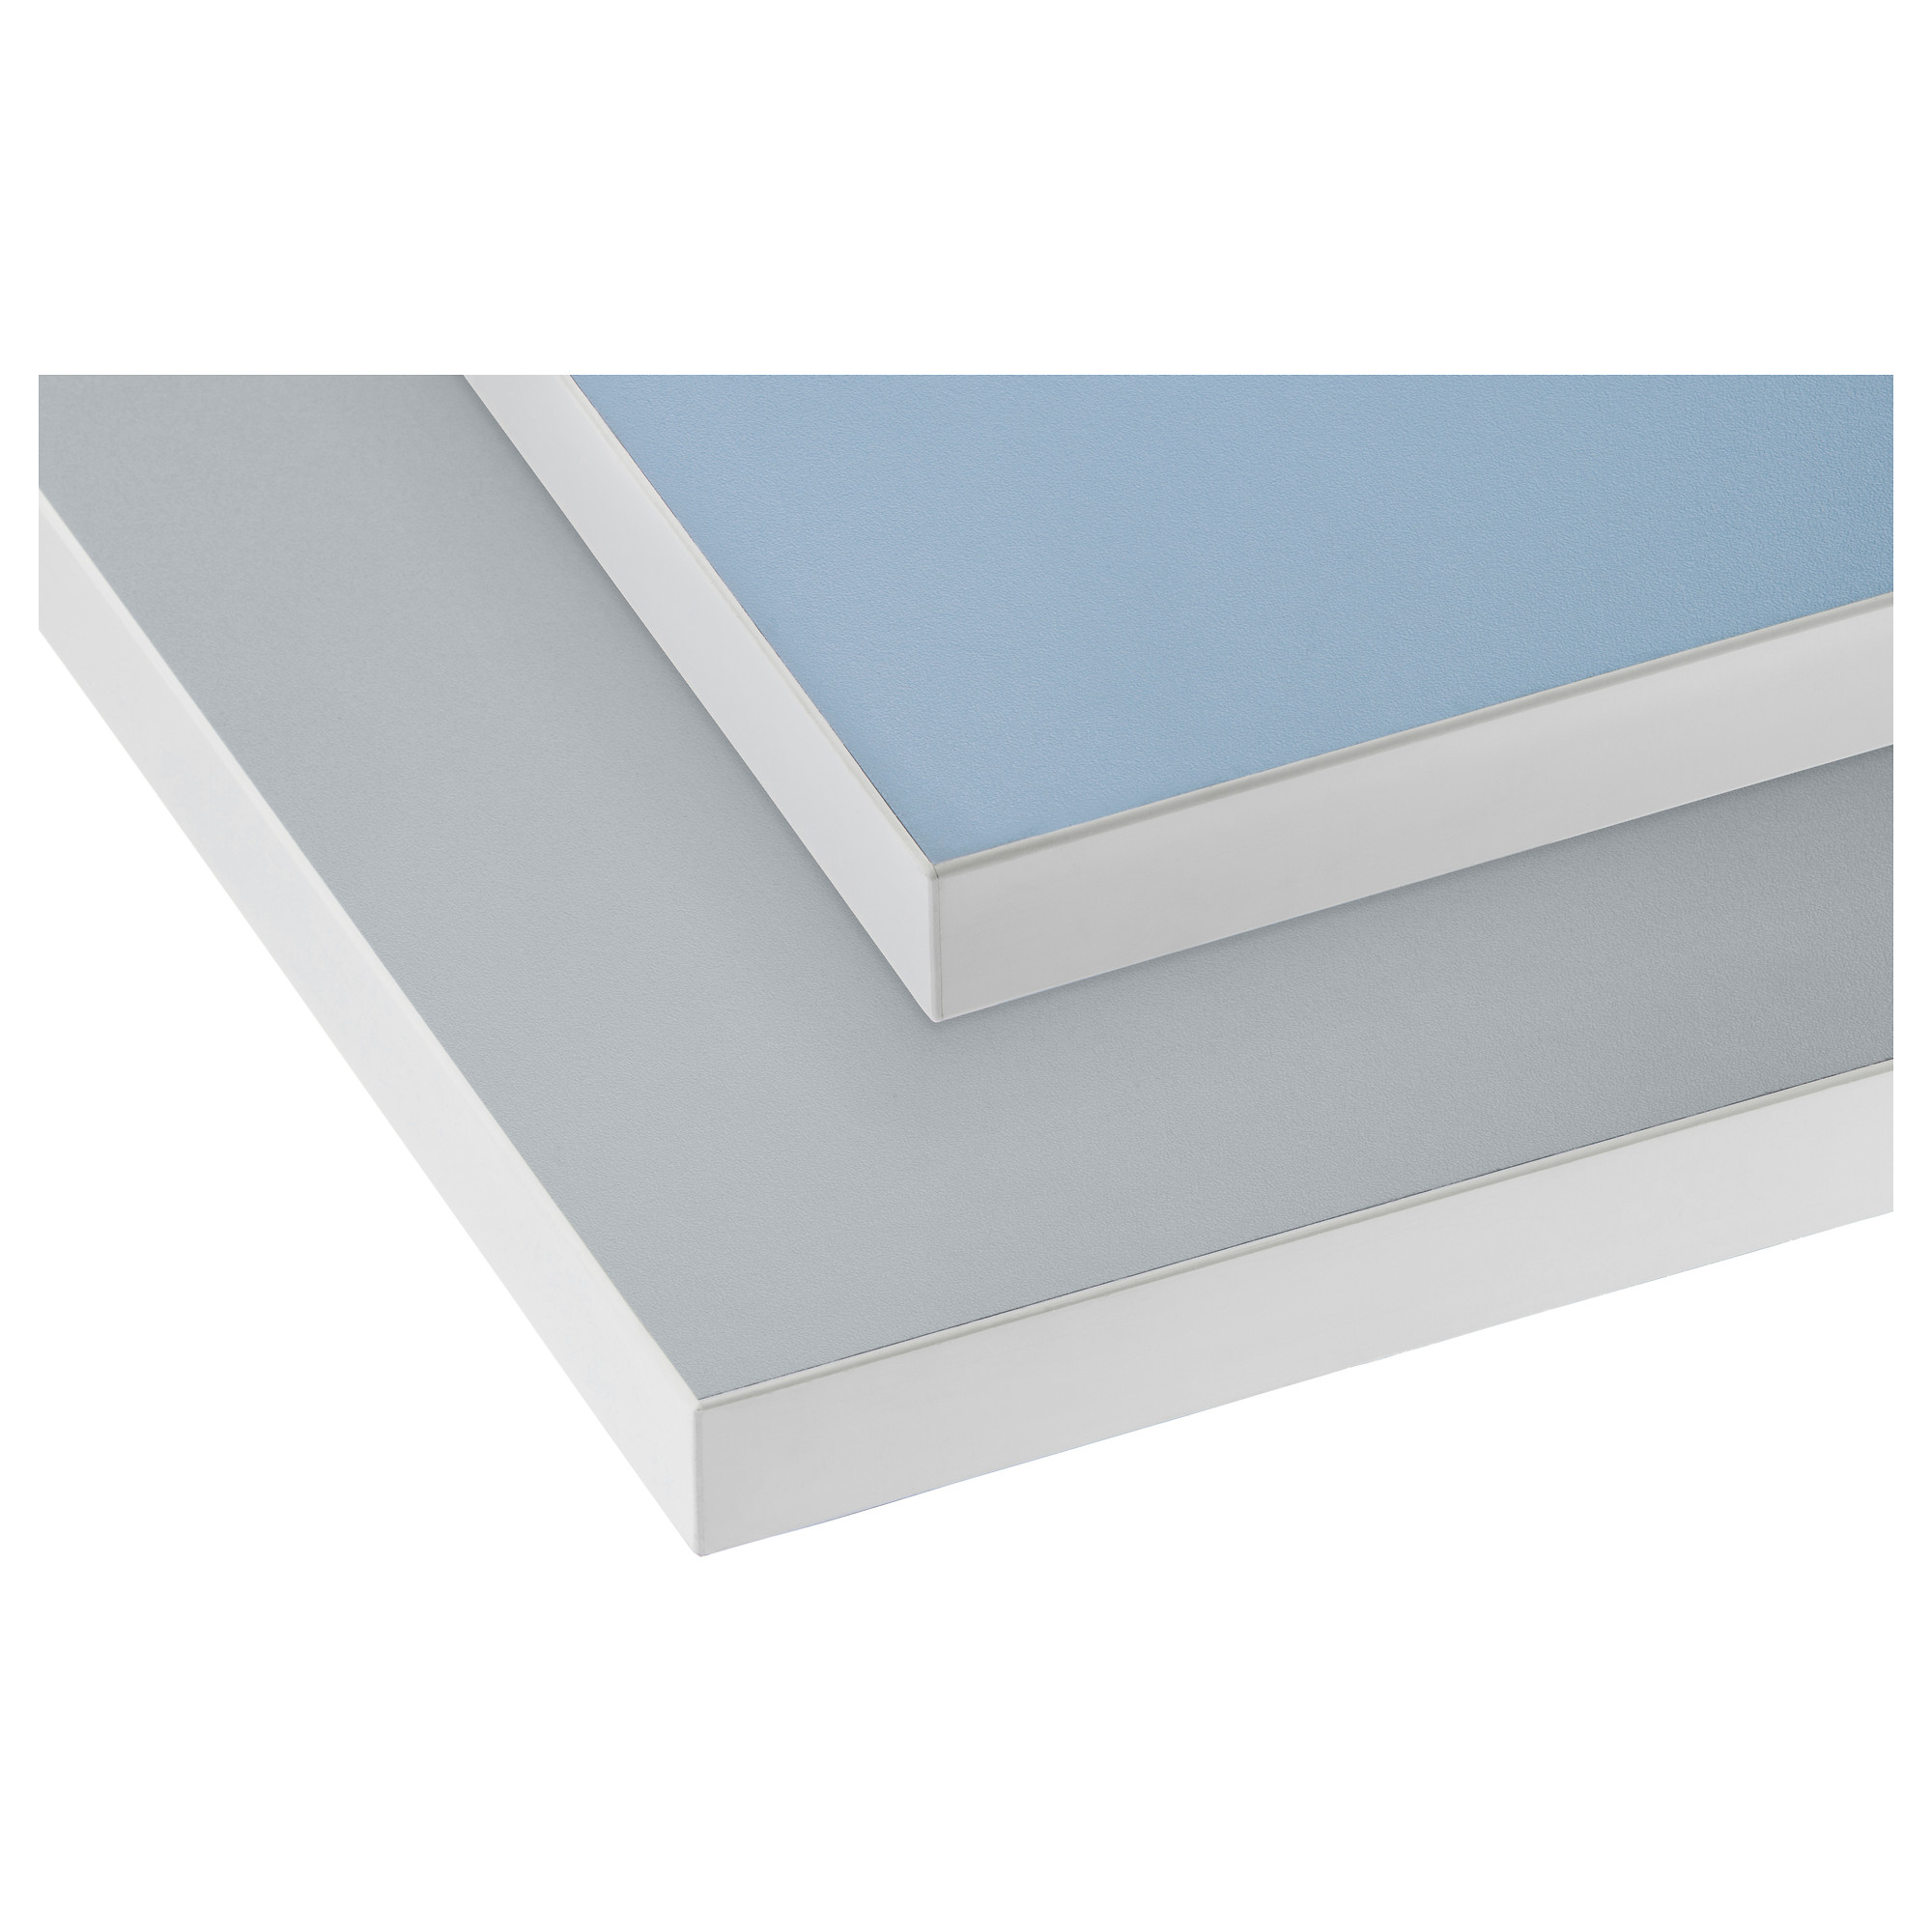 Standard Bench Top Double Sided - Grey and Blue